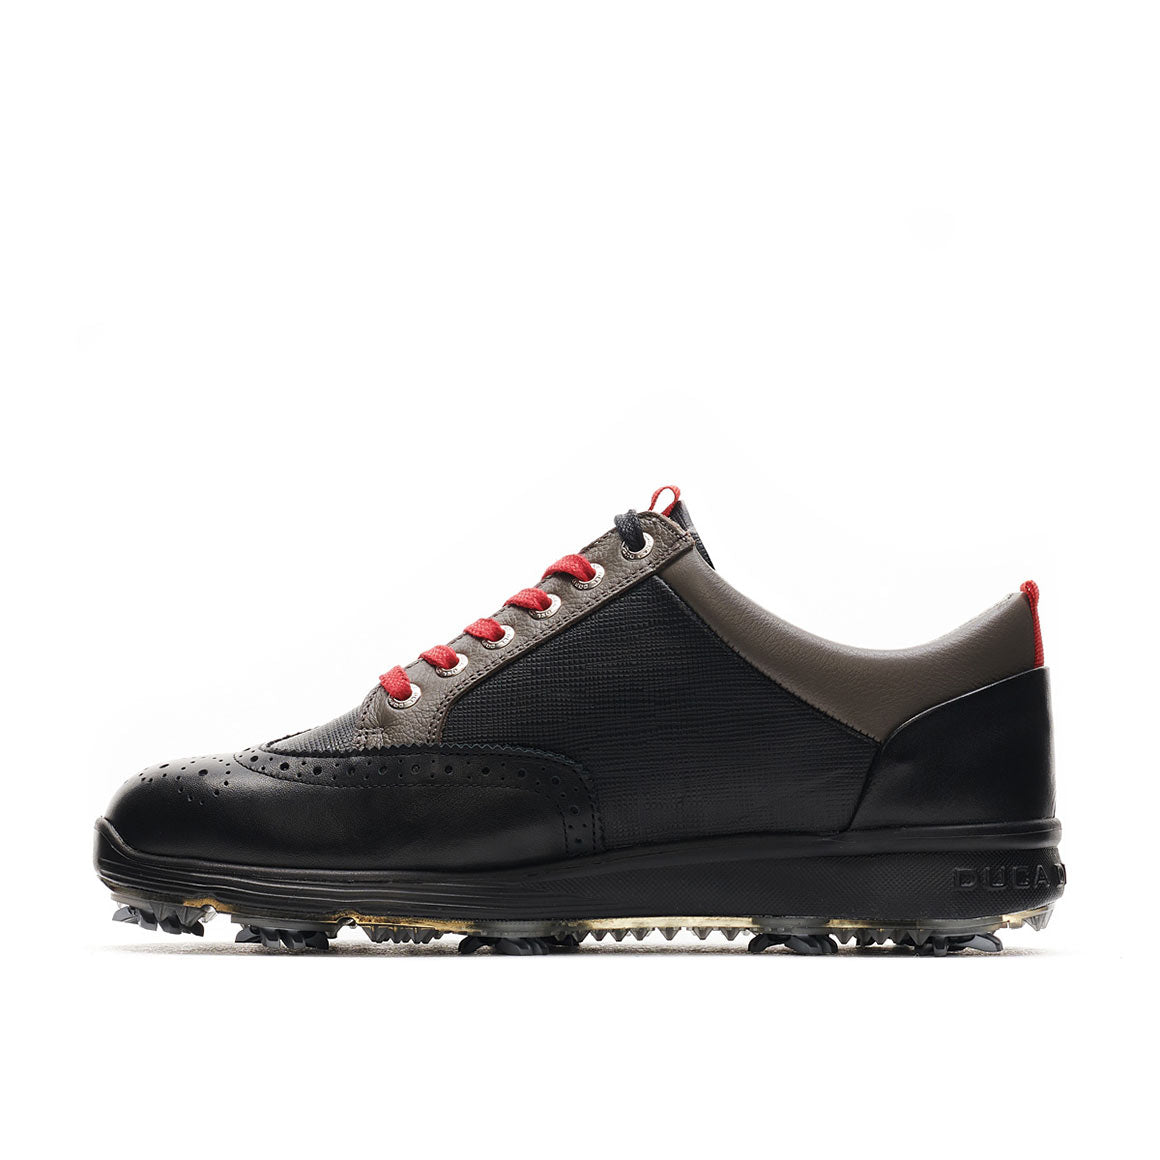 Men's Heritage Black / Grey Golf Shoe